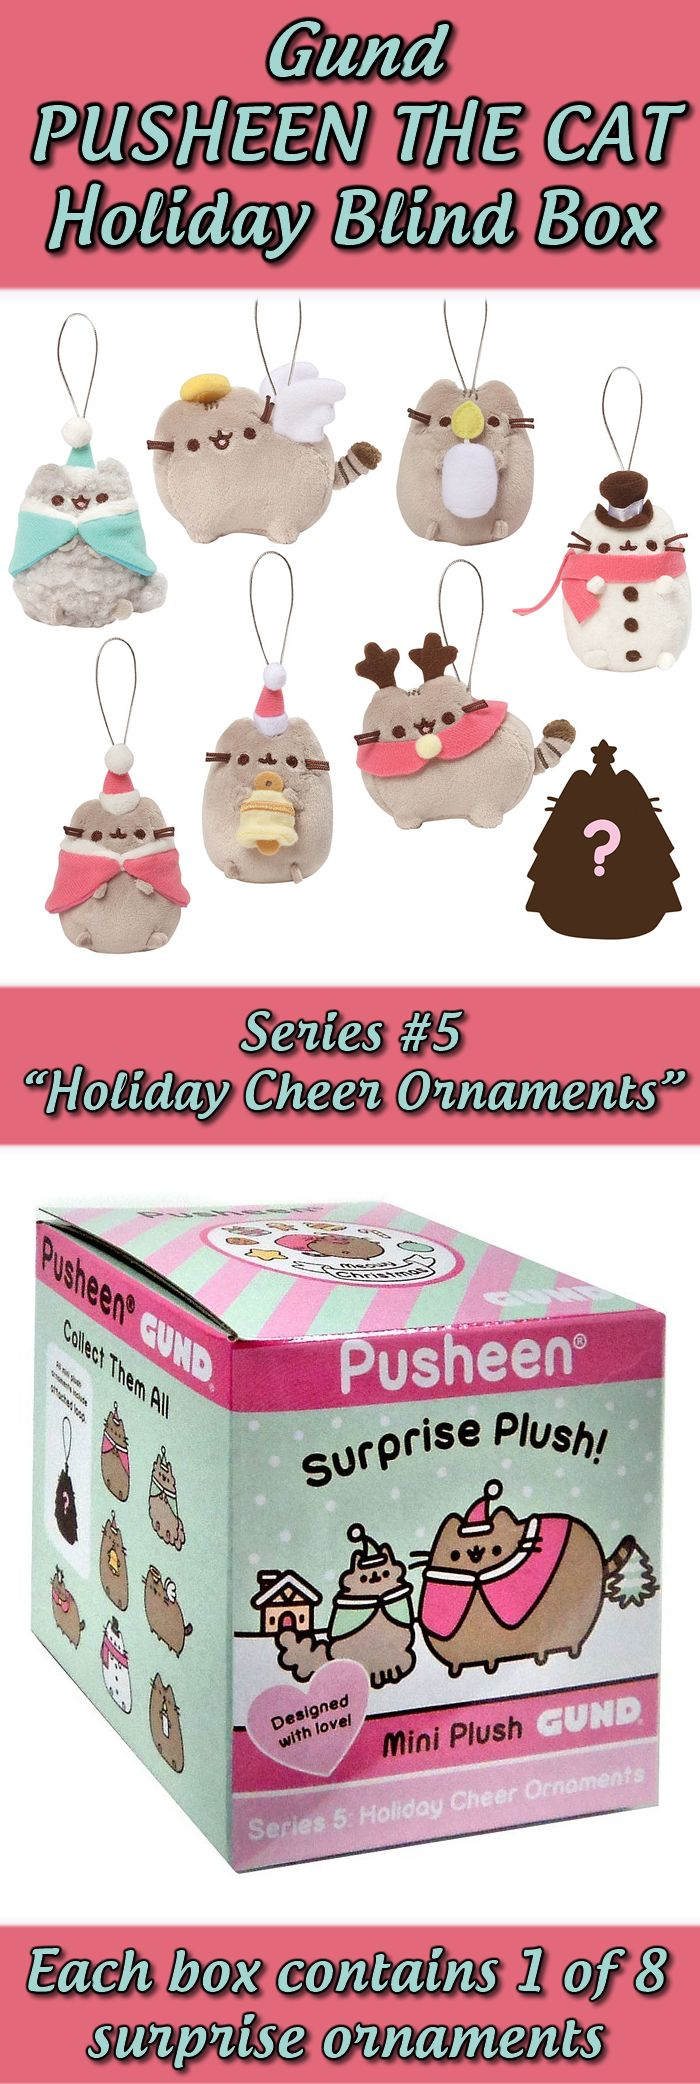 Gund Pusheen Holiday Blind Gift Box - $10 - Christmas, Pusheen the cat, cat lady, cats, gift ideas, cute products #affiliate